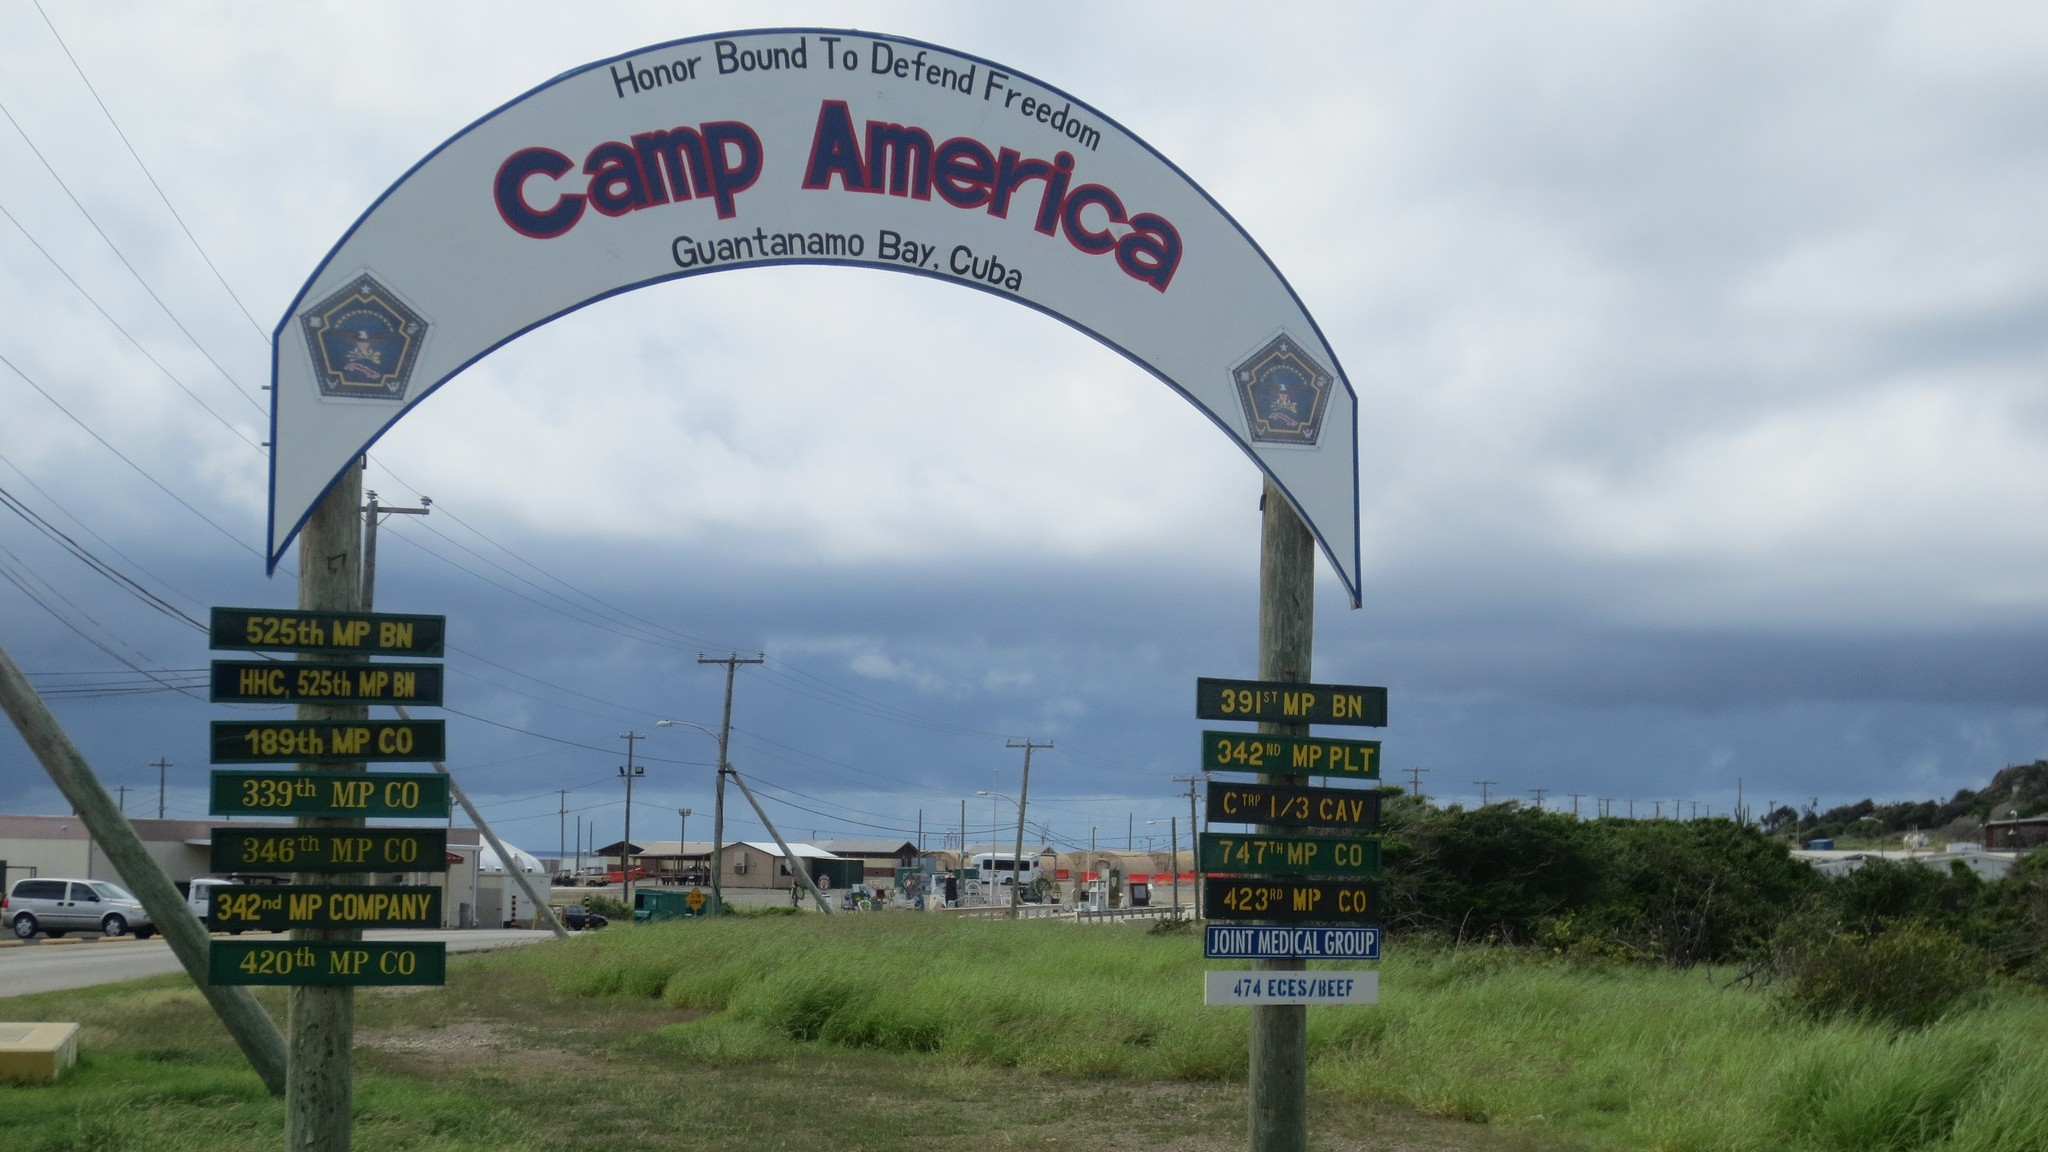 Will Cuba Now Cash 55 Years' Worth of Guantanamo Rent Checks?